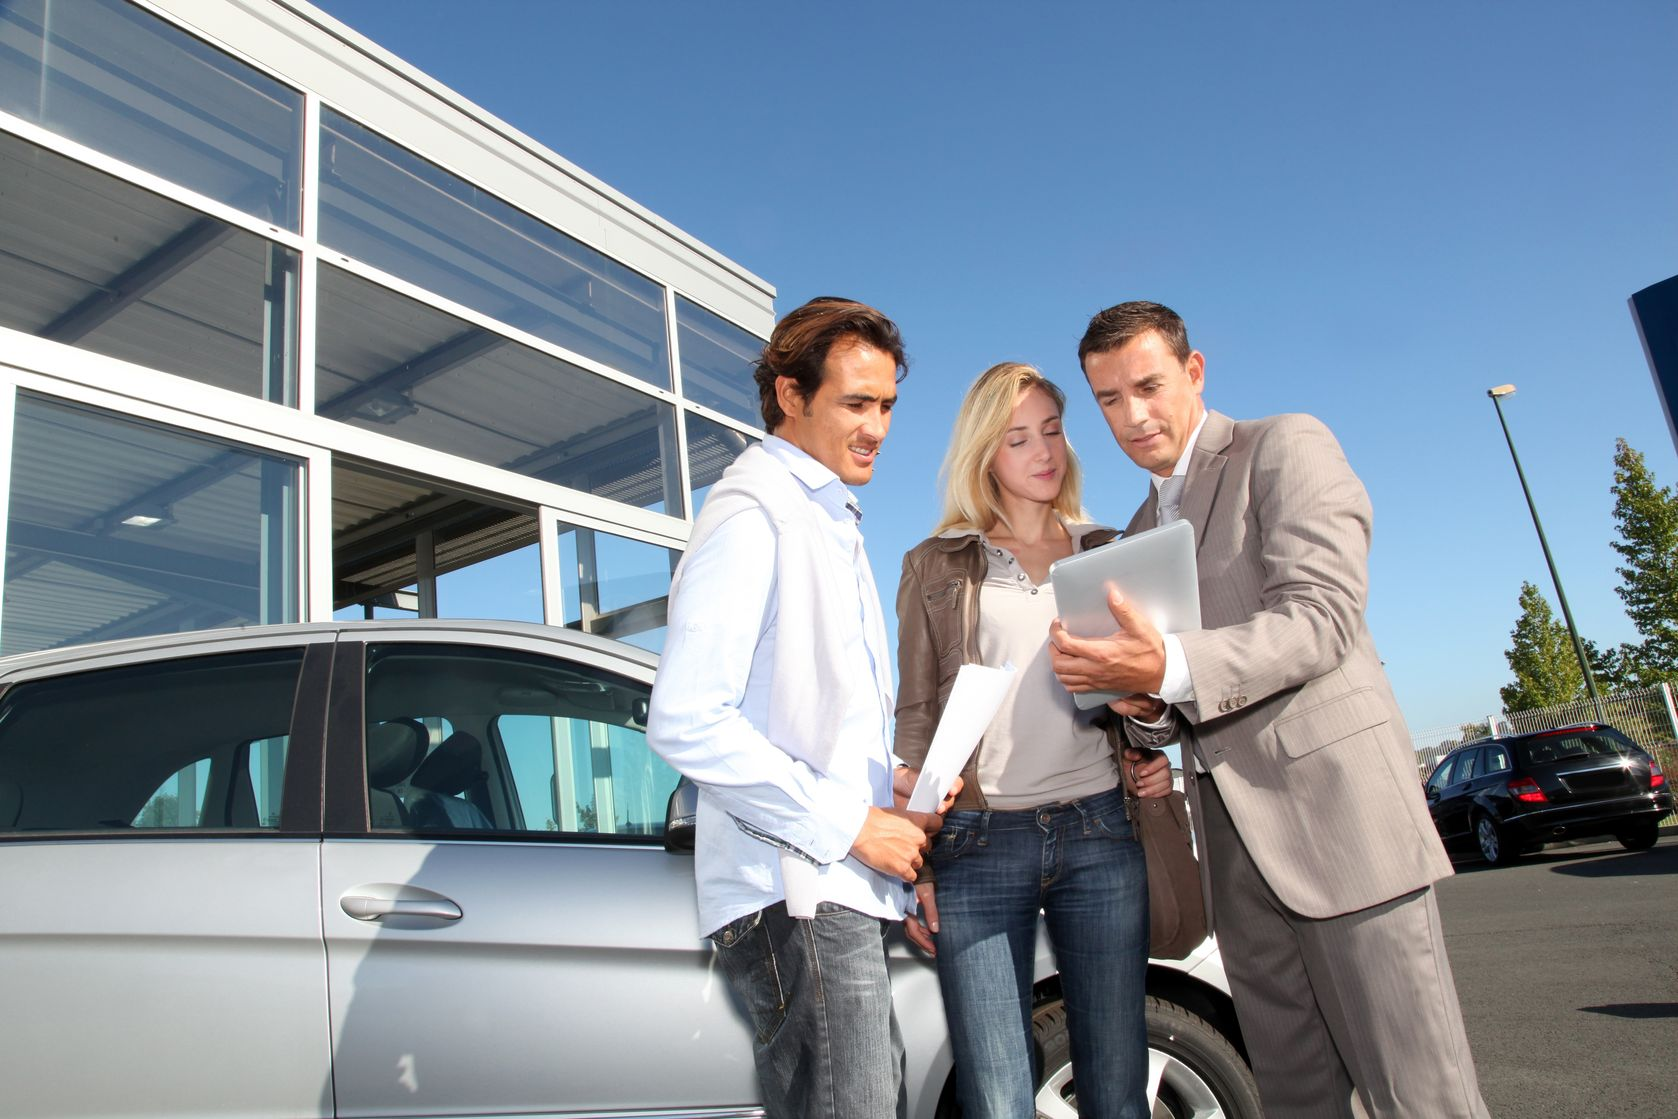 Fort Wayne Auto Dealers Insurance